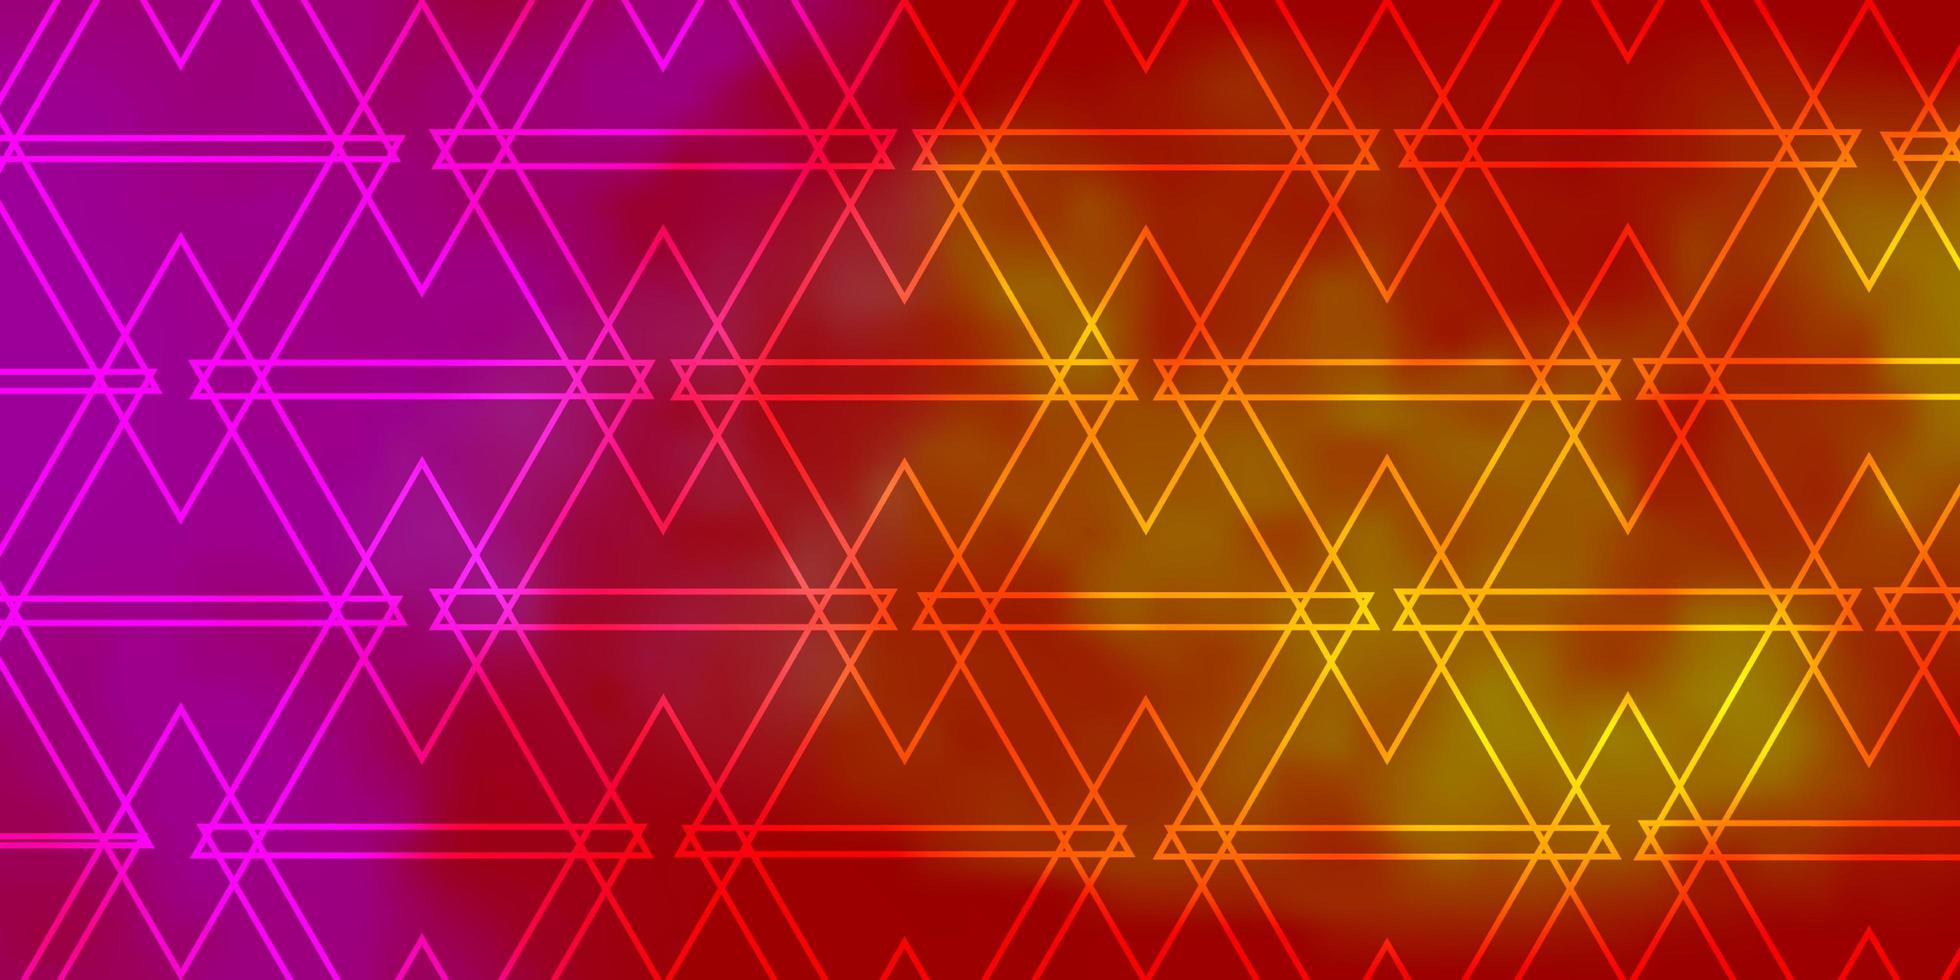 Light Pink, Yellow vector backdrop with lines, triangles.